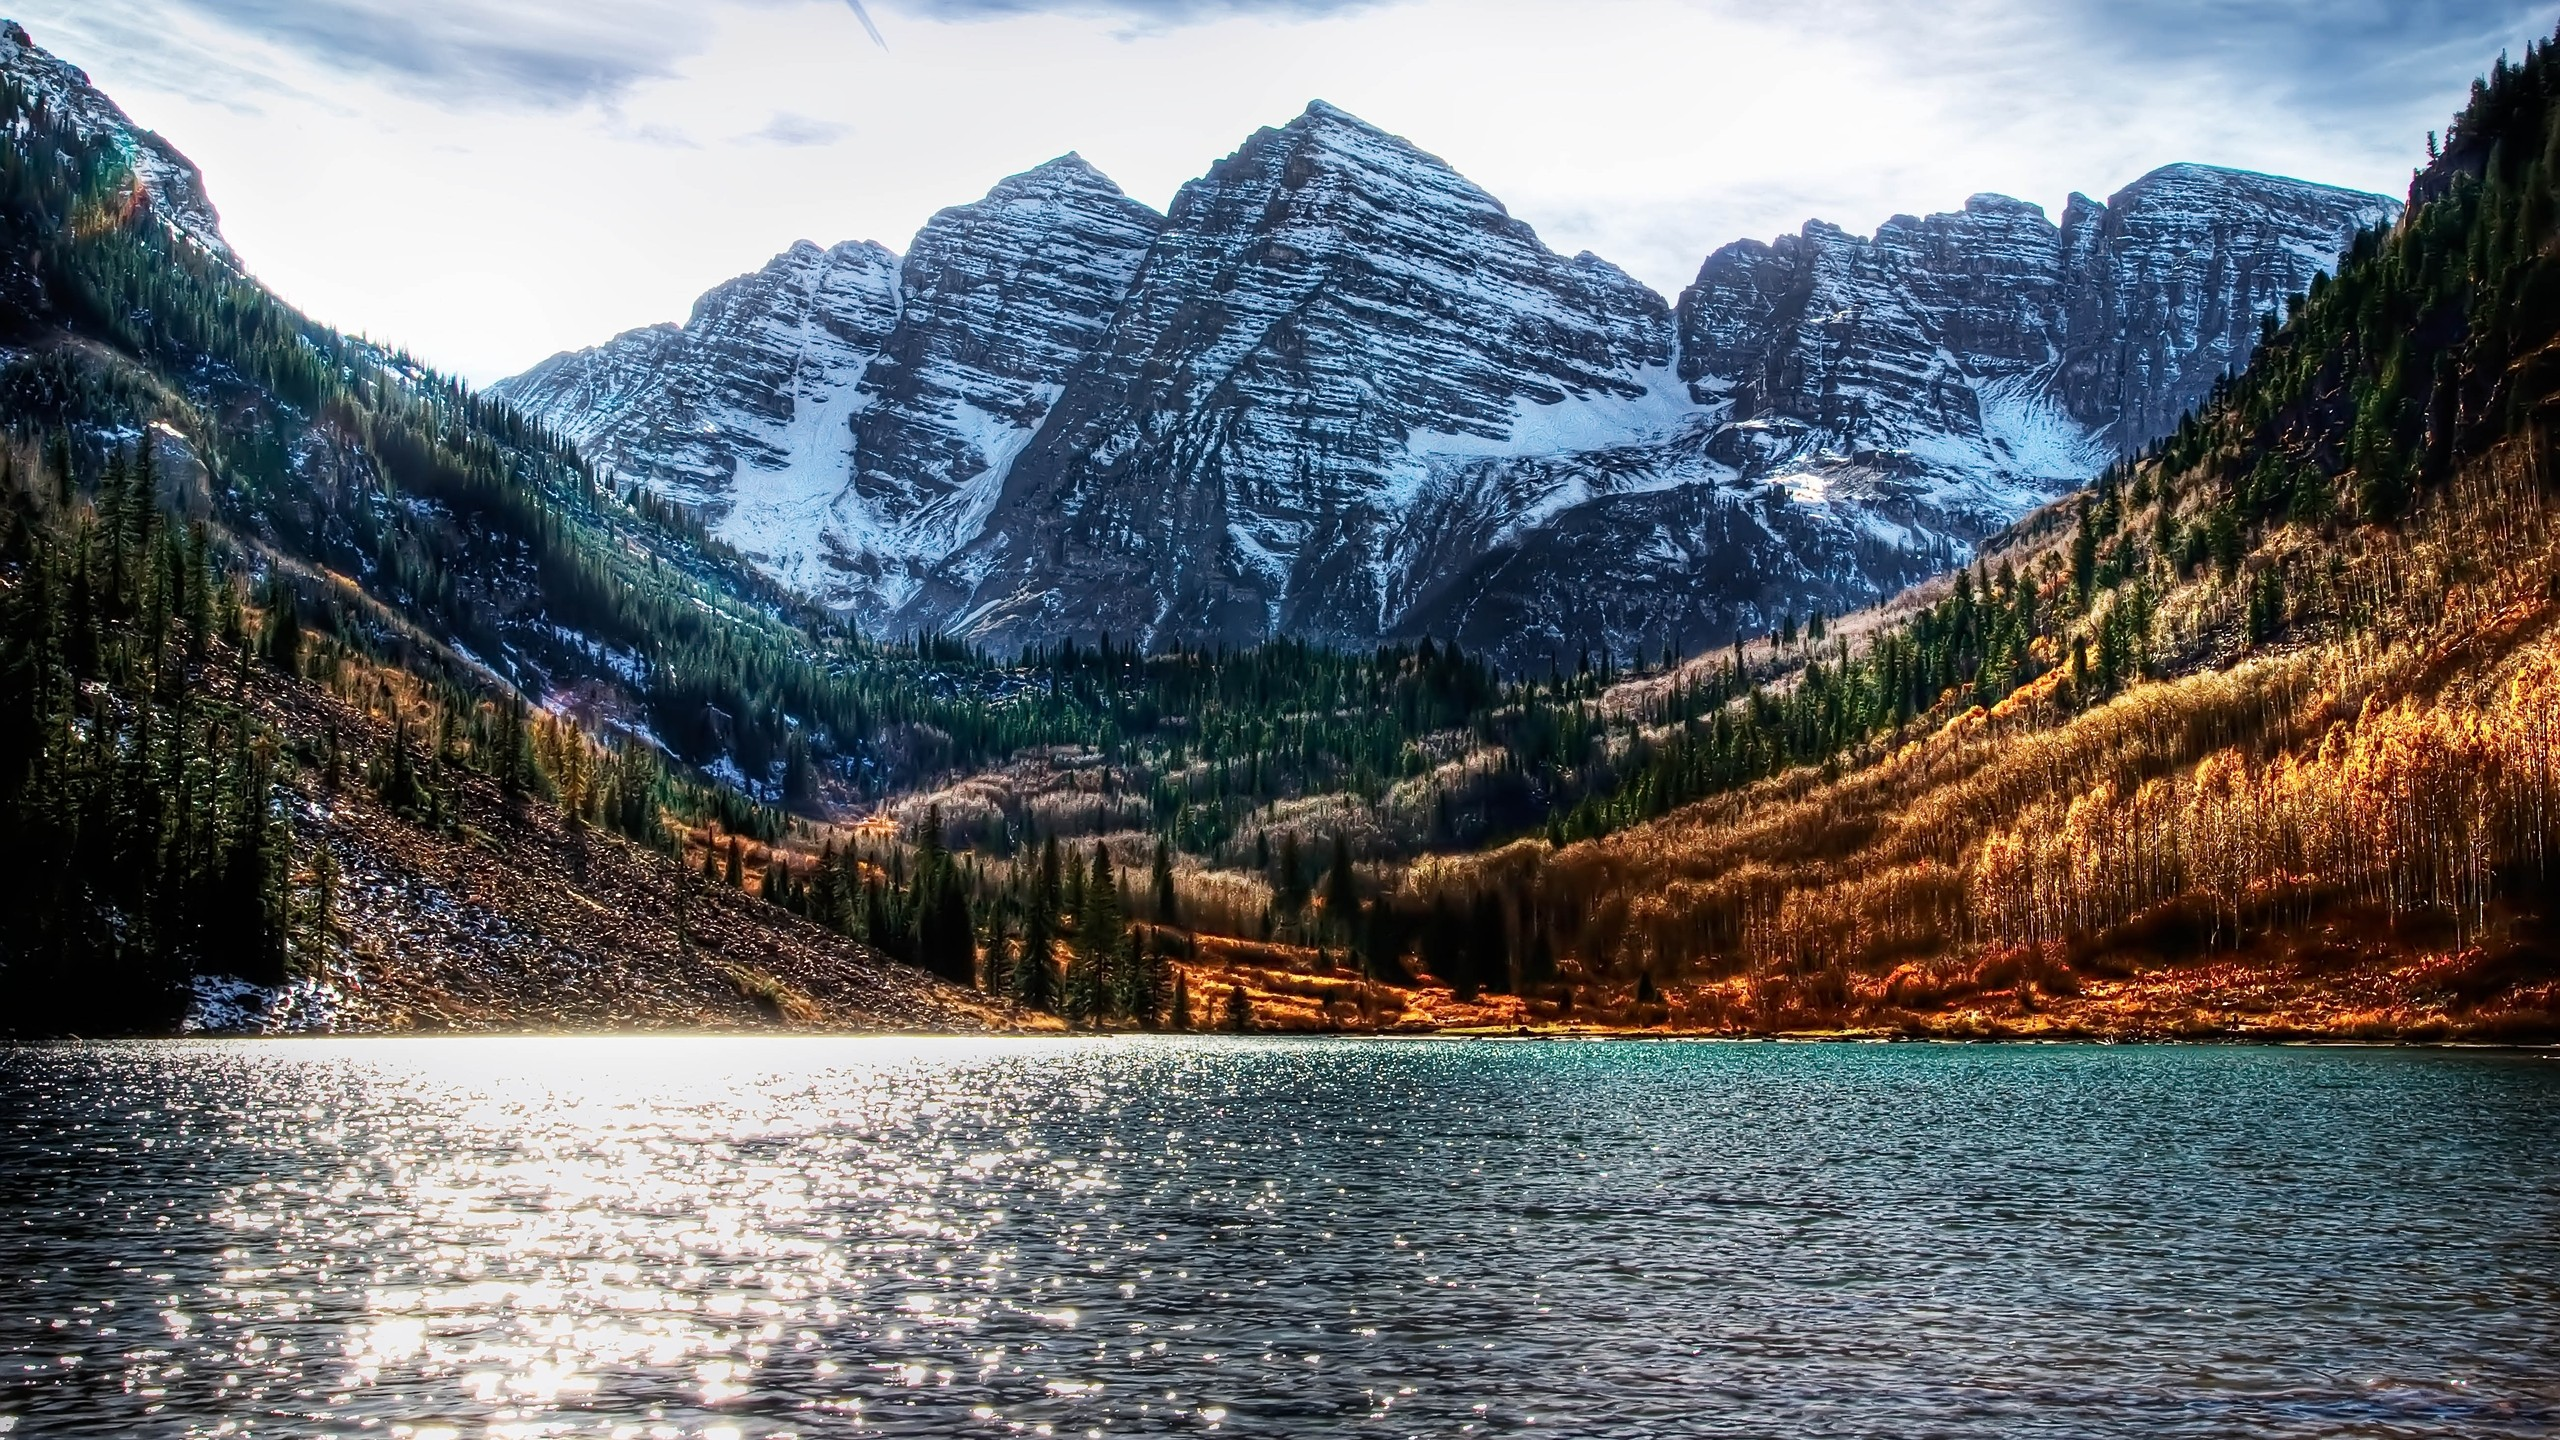 Water Mountains Landscapes Nature Snow Trees Forests Colorado